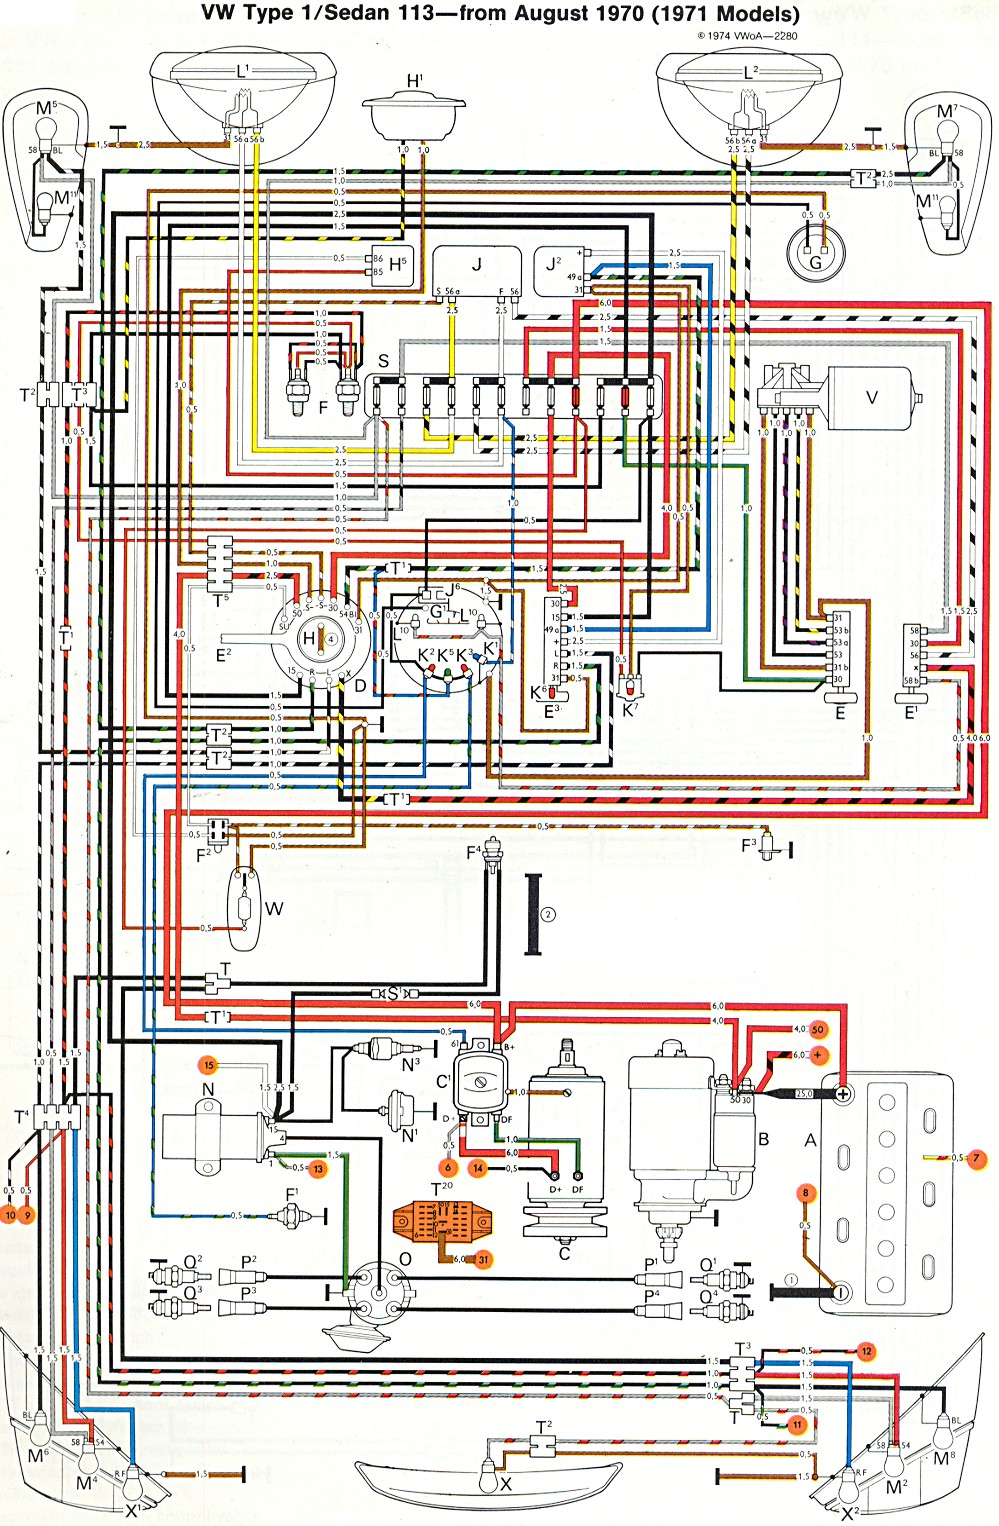 thesamba.com :: type 1 wiring diagrams 1974 vw ignition wiring diagram